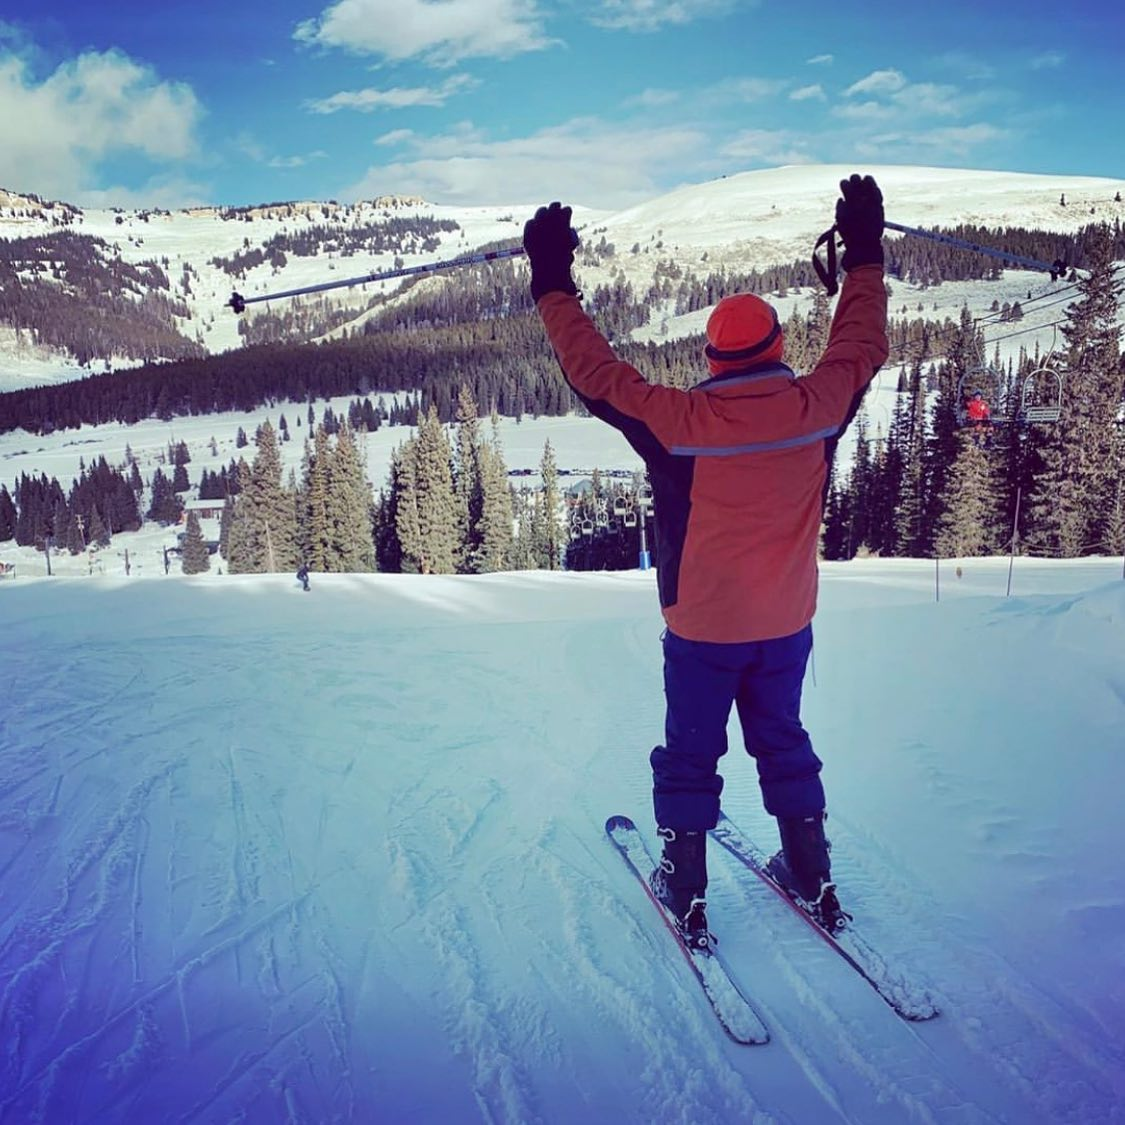 Image of a skier at the top of the slopes with their arms up at Antelope Butte Mountain Recreation Area